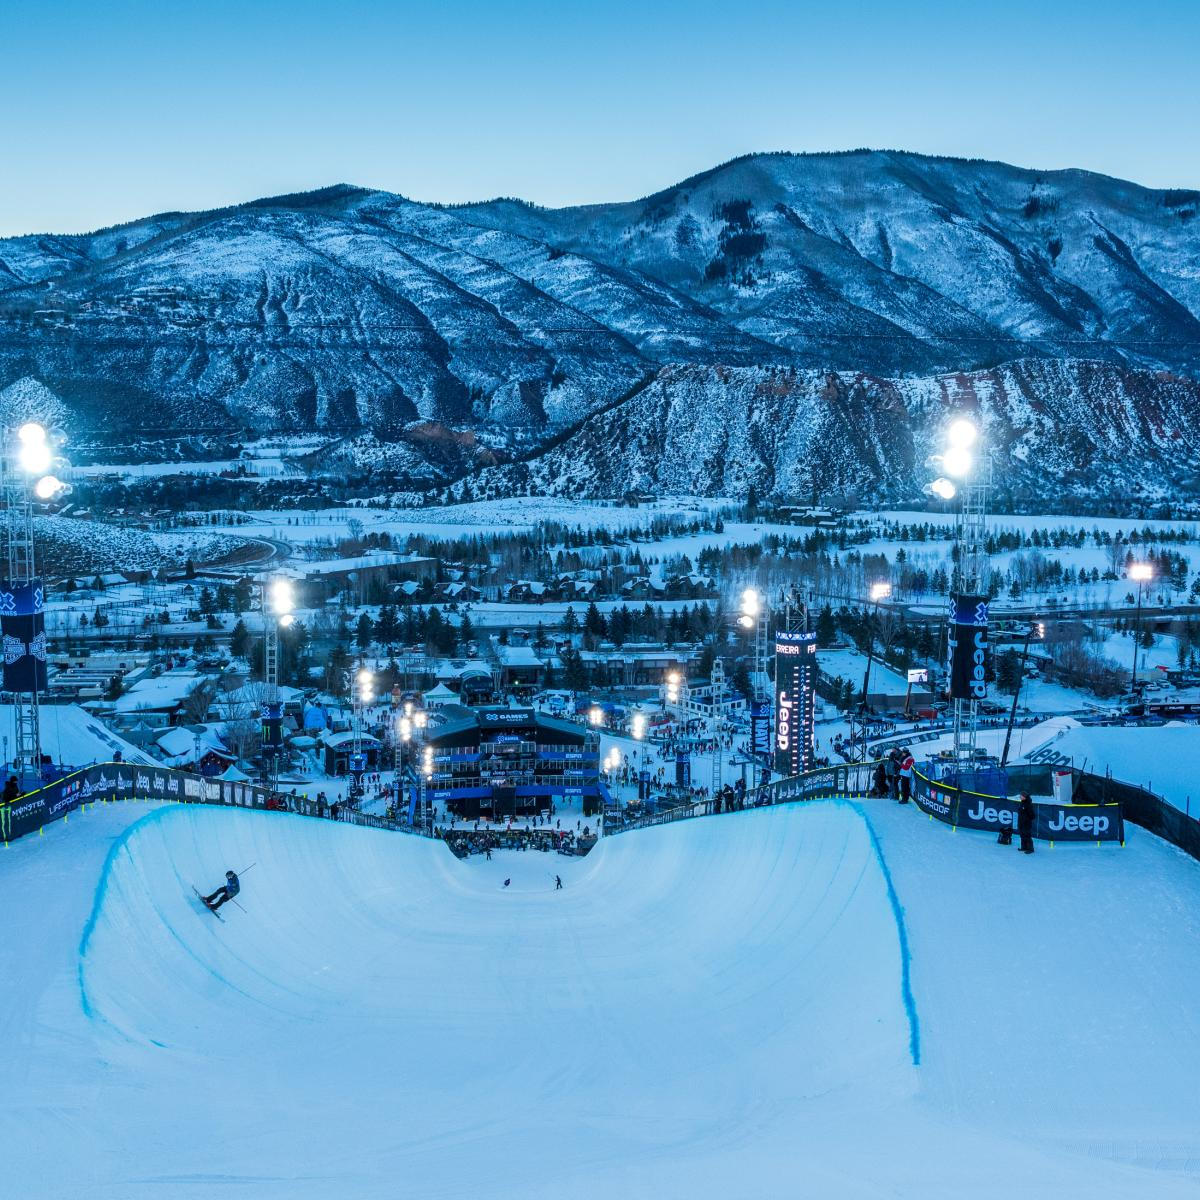 Winter X Games 2016: Results, Medal Winners, Trick